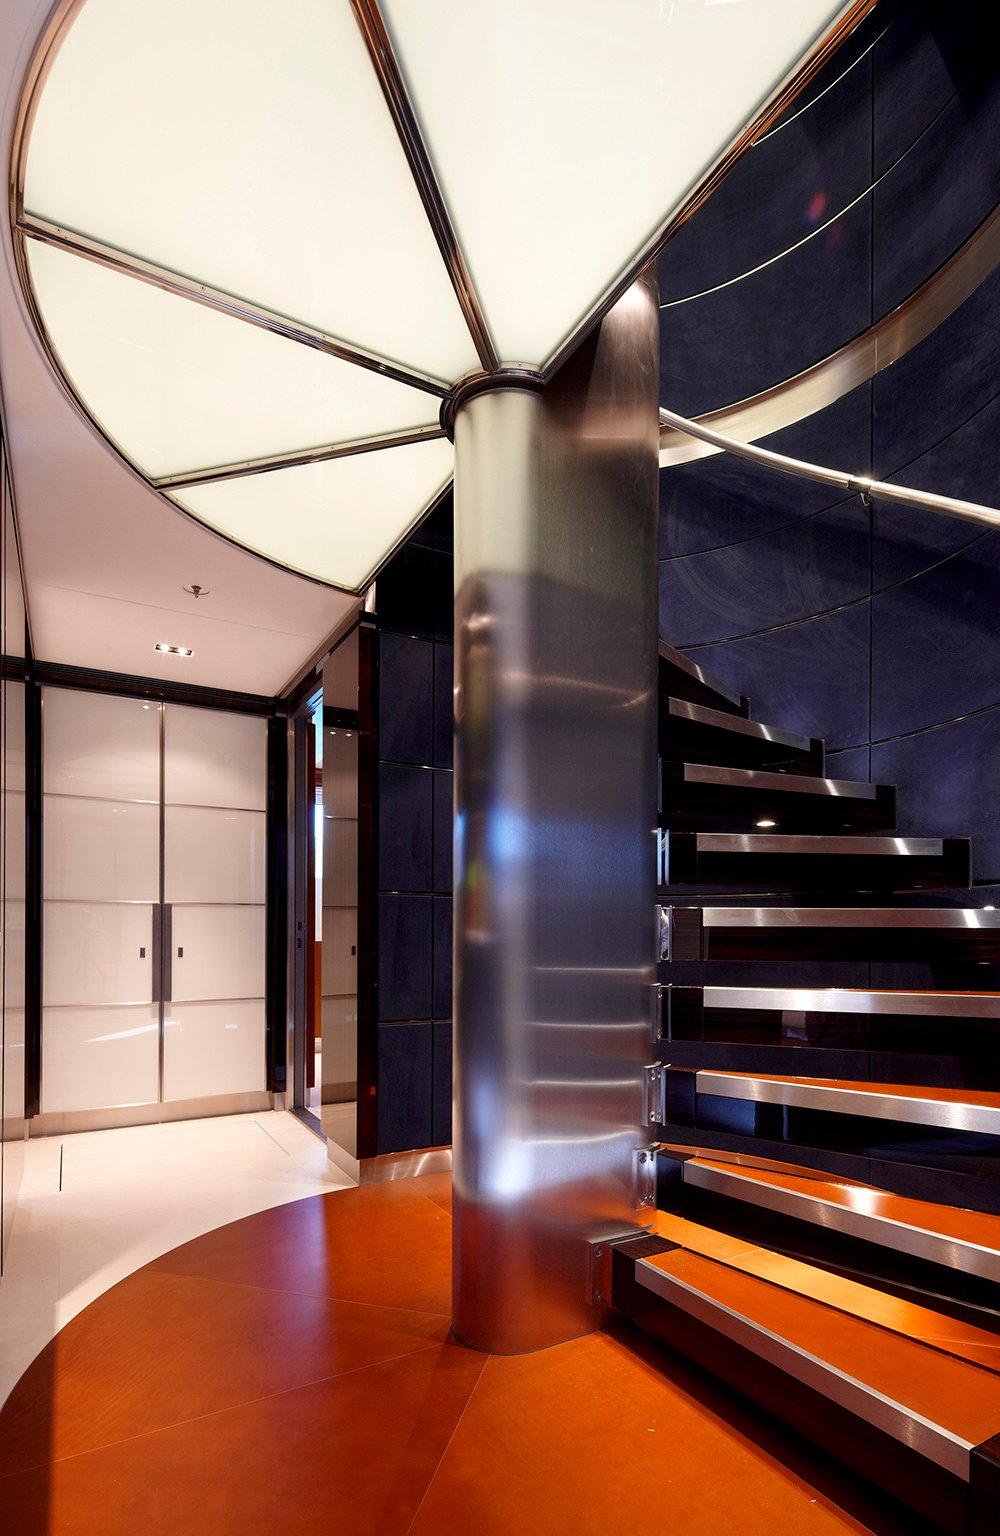 Luxurious entryway boasts a metal curved staircase accented with orange treads and fixed to the deep blue paneled walls.